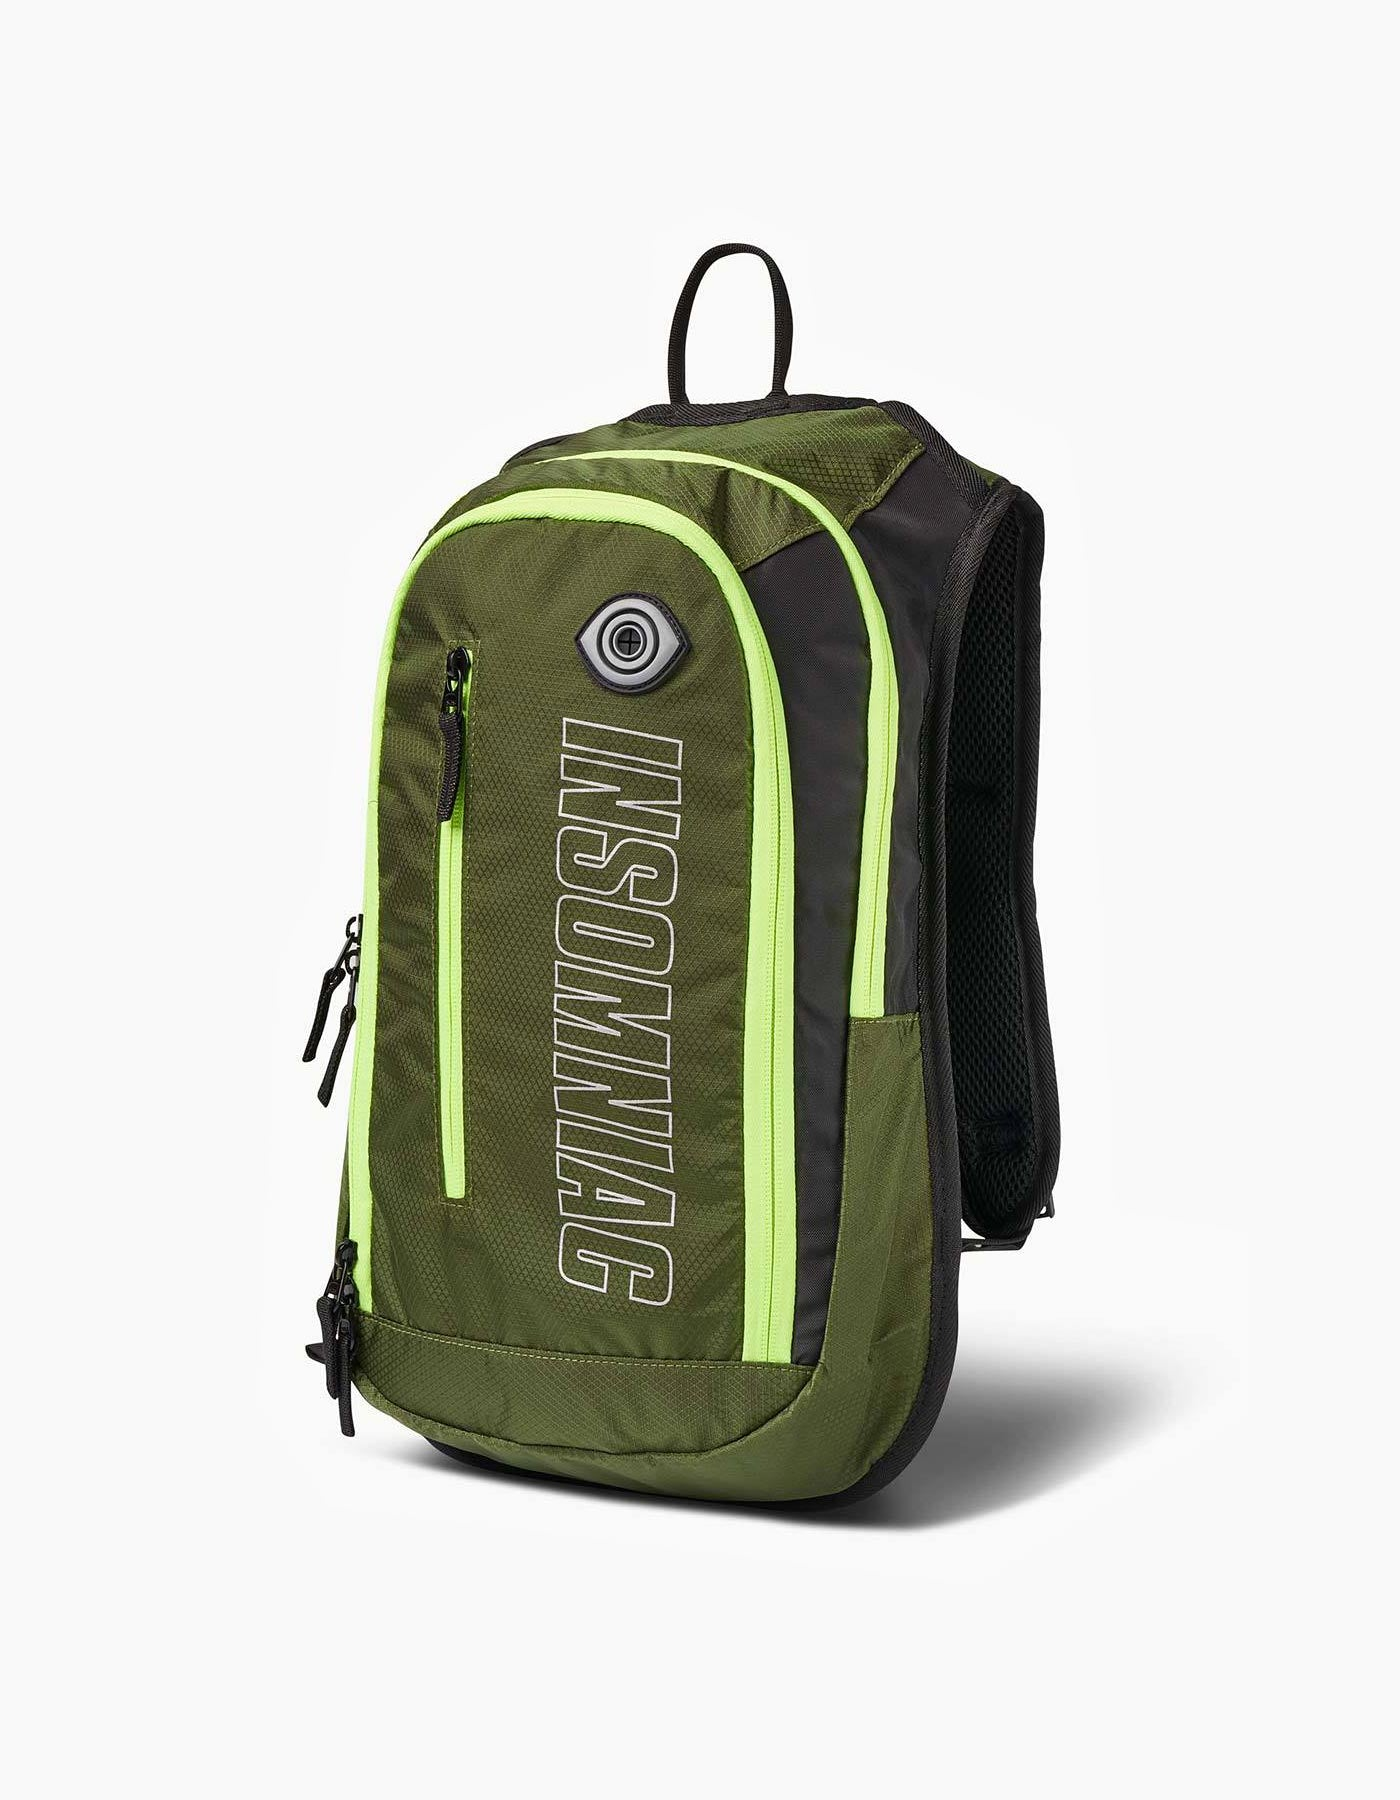 HARD Summer 2019 - Insomniac Hydration Pack